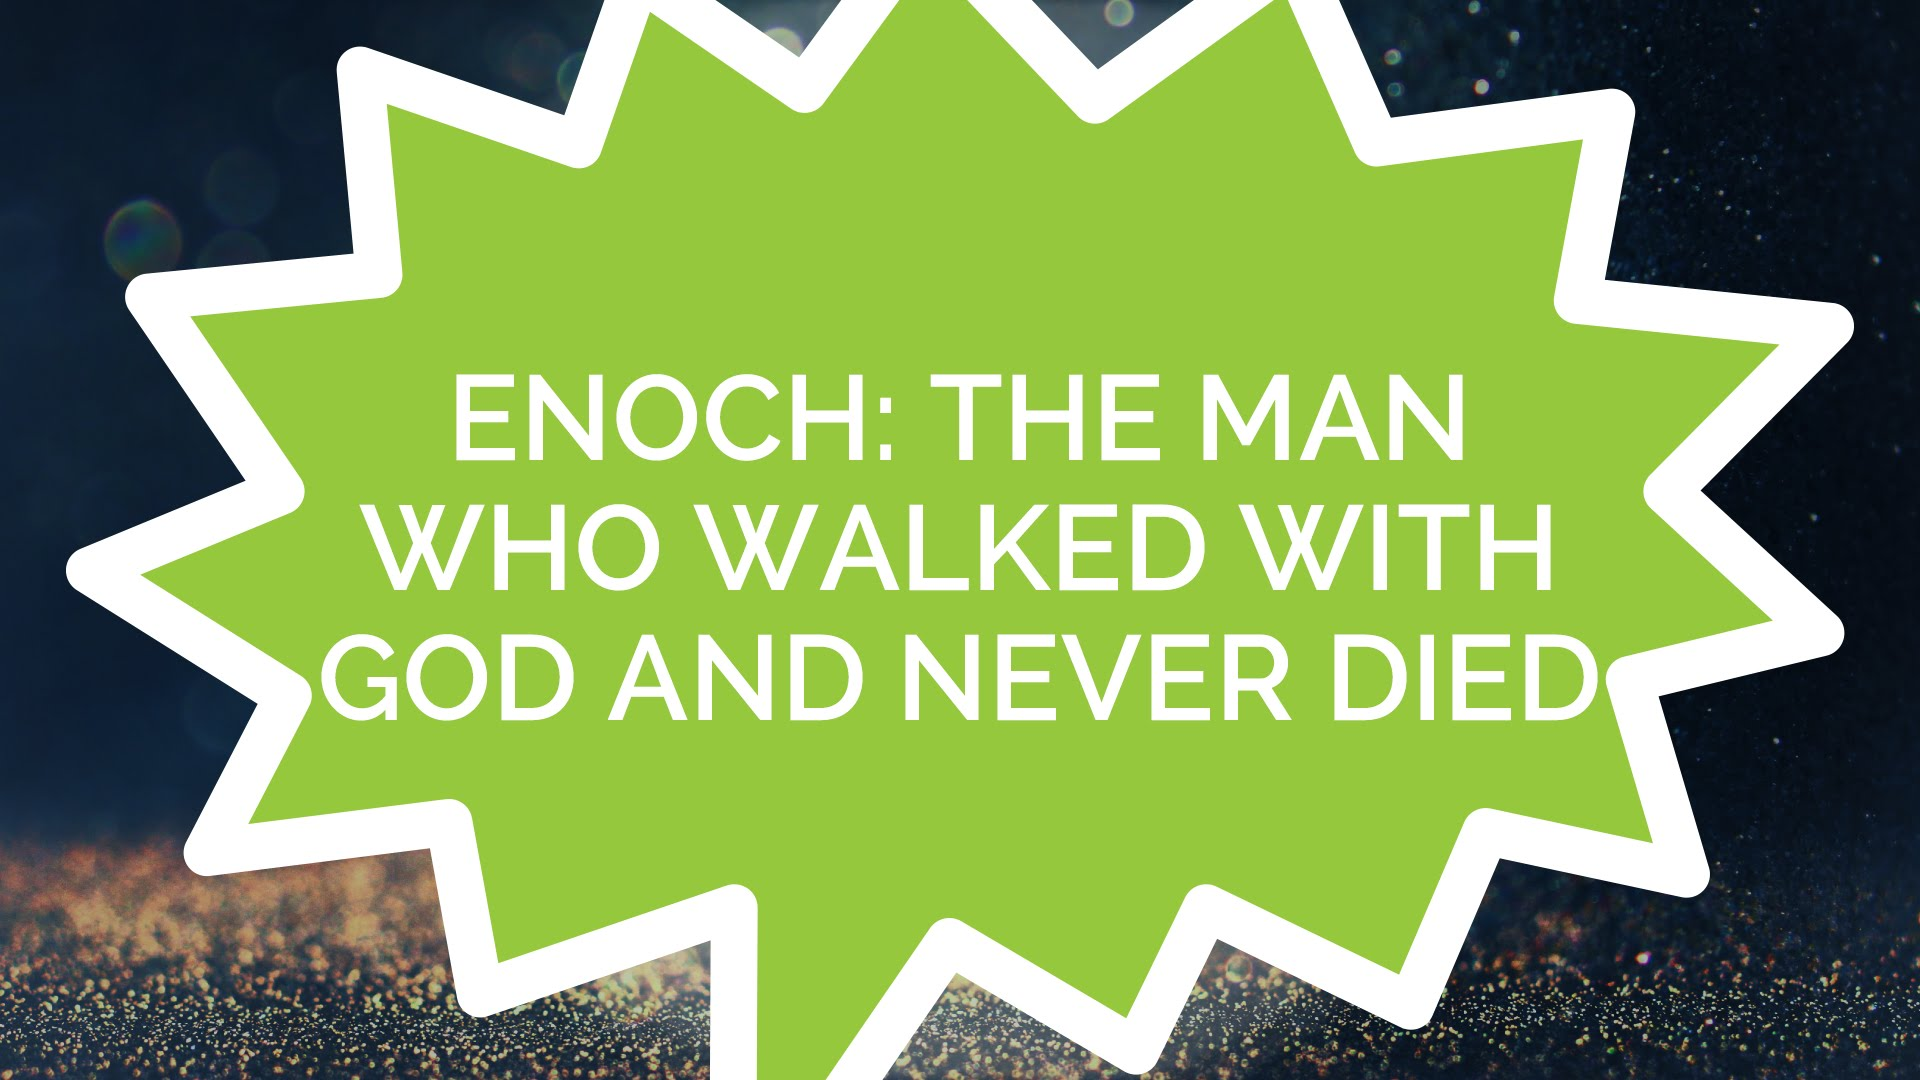 Enoch: The Man Who Walked with God and Never Died (Kids)